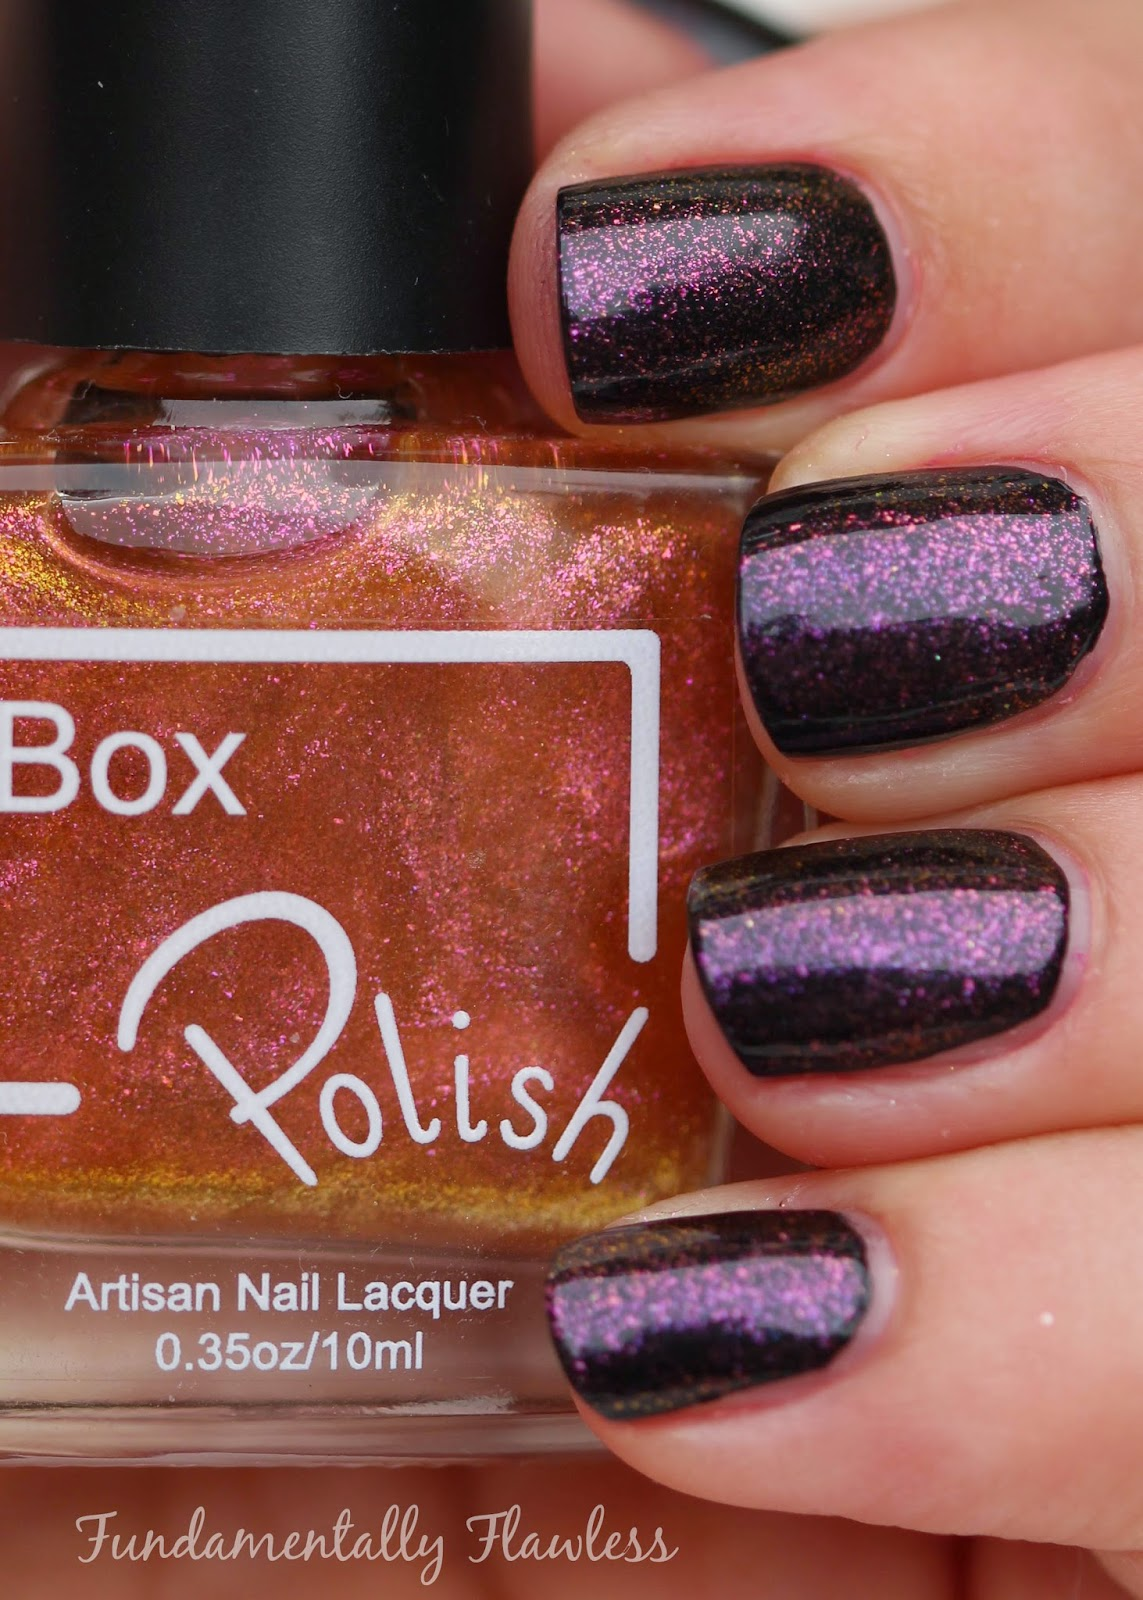 Box Polish Hypnotise swatch